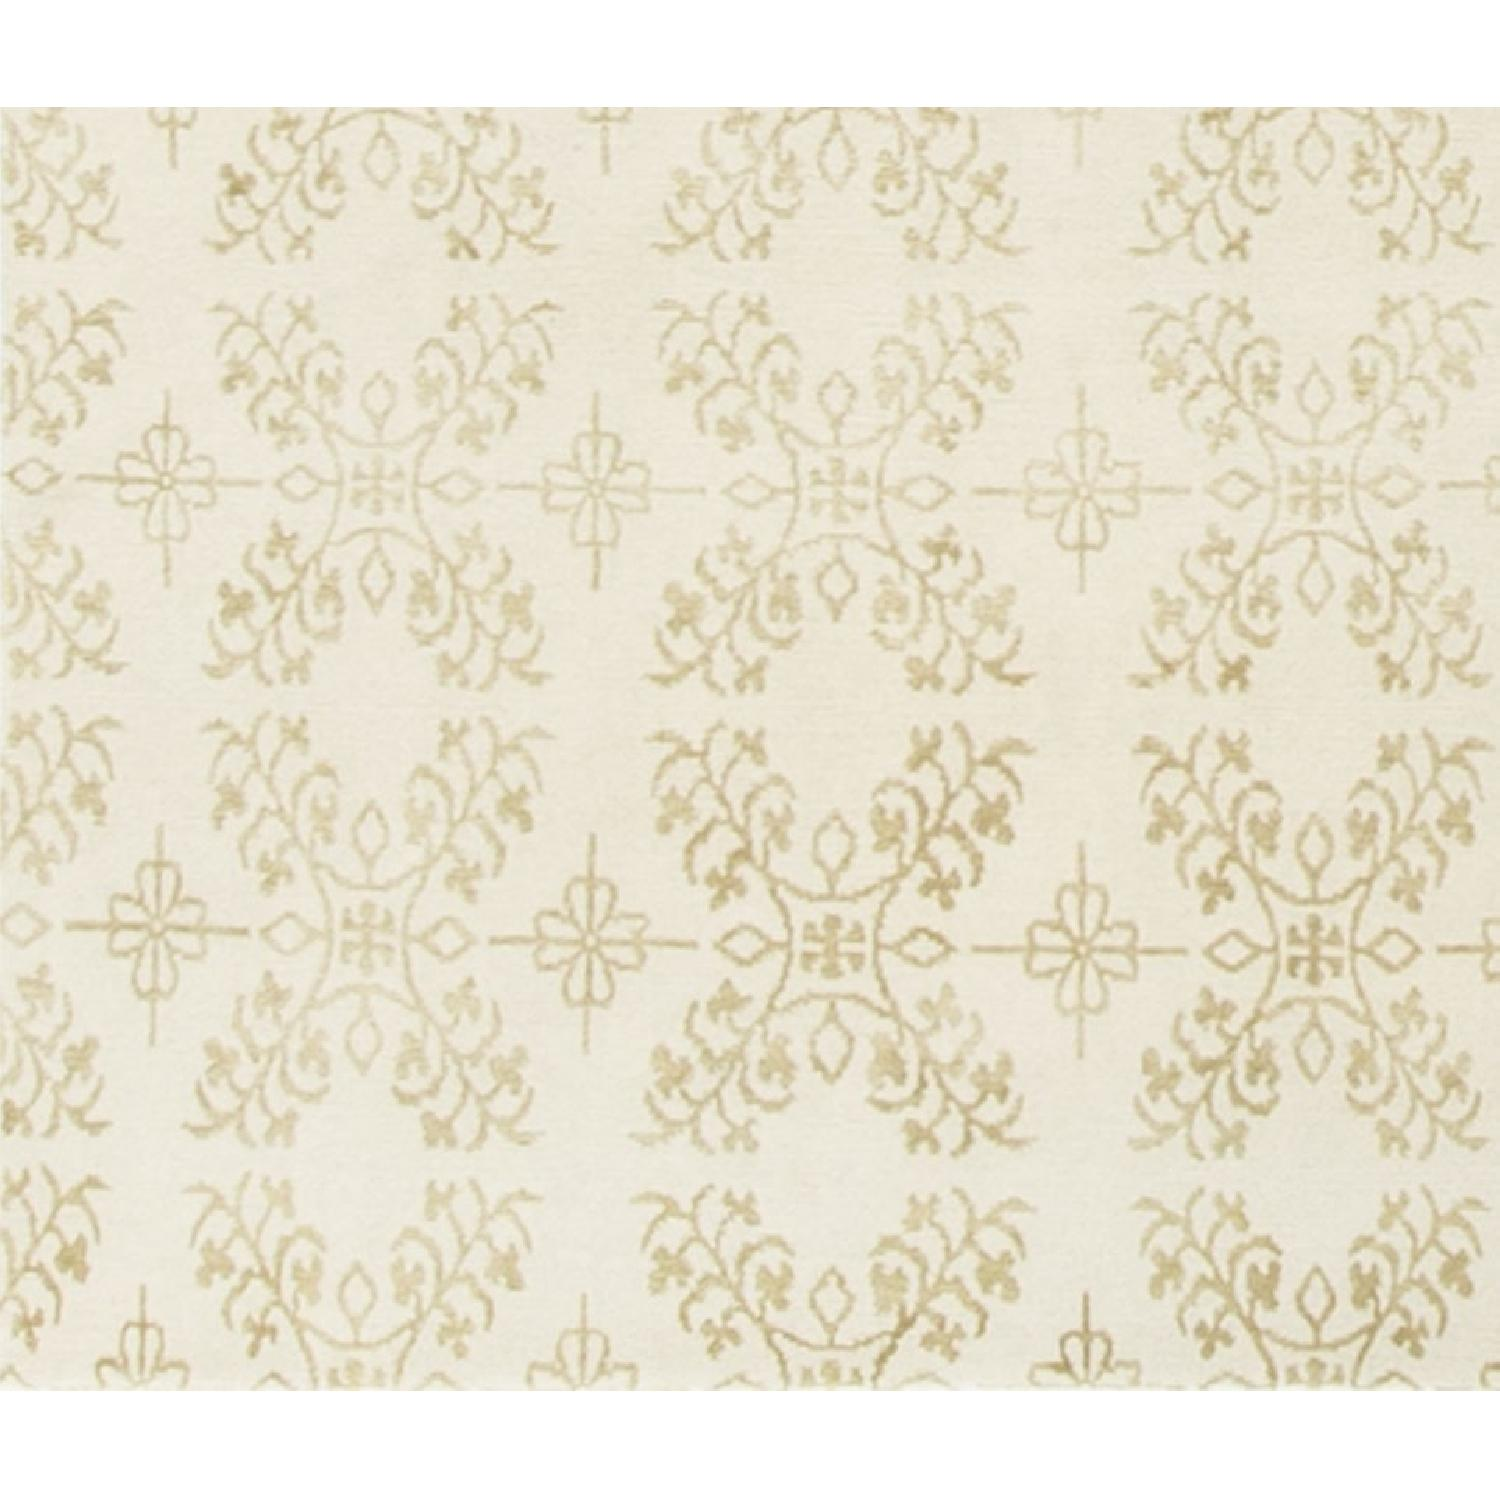 Modern Contemporary Hand Knotted Wool Rug in Ivory - image-3